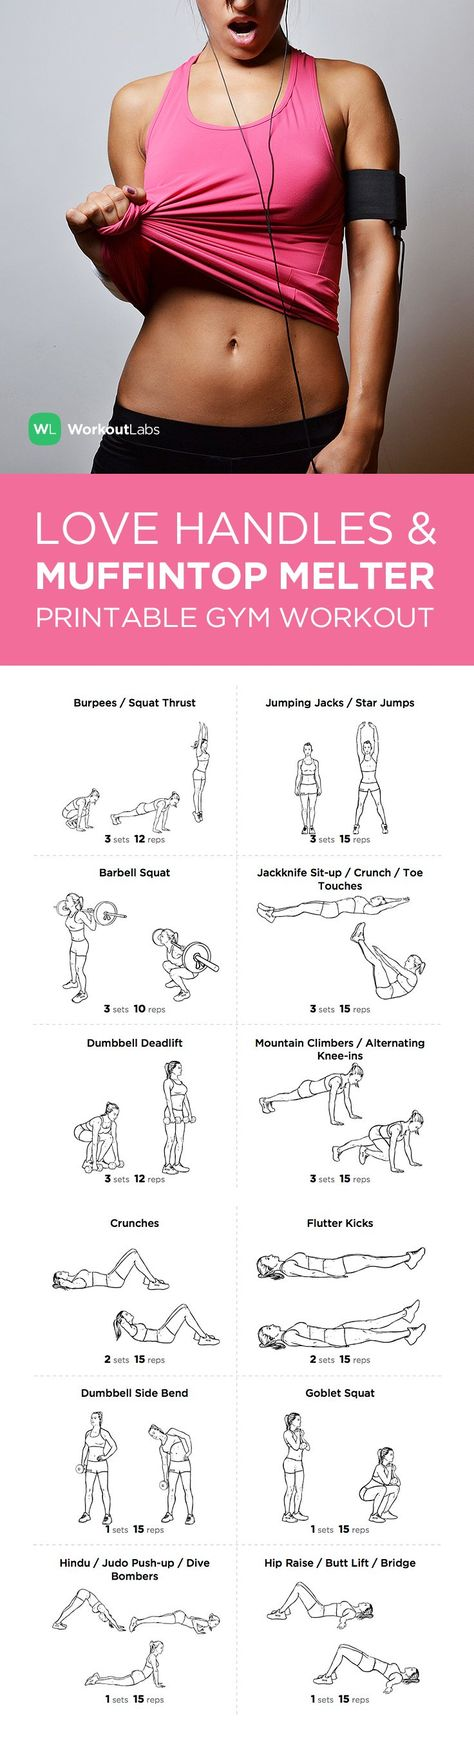 FREE PDF: Love Handles and Muffin Top Melter Printable Gym Workout for Women –visit http://wlabs.me/1sS9gnH to download!